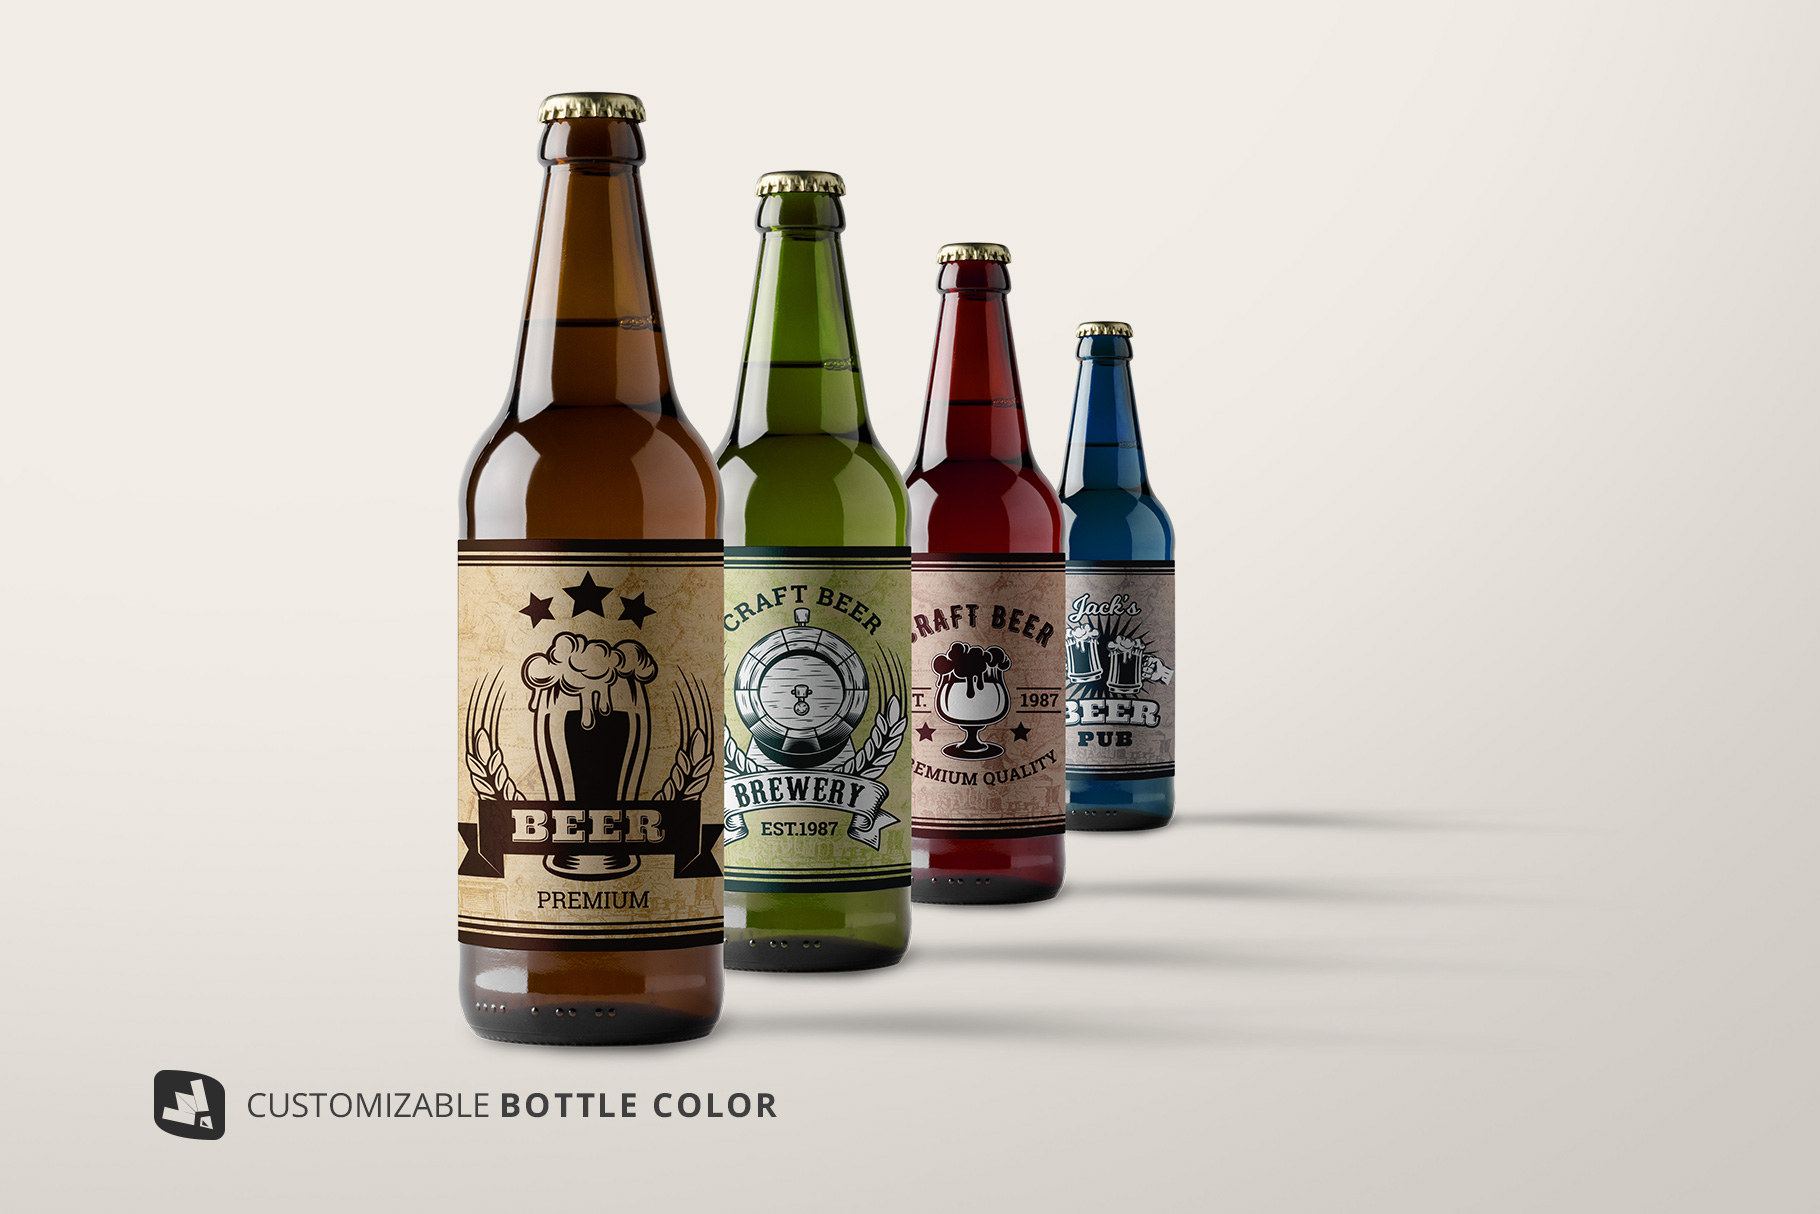 customizable bottle colors of the craft beer bottle packaging mockup